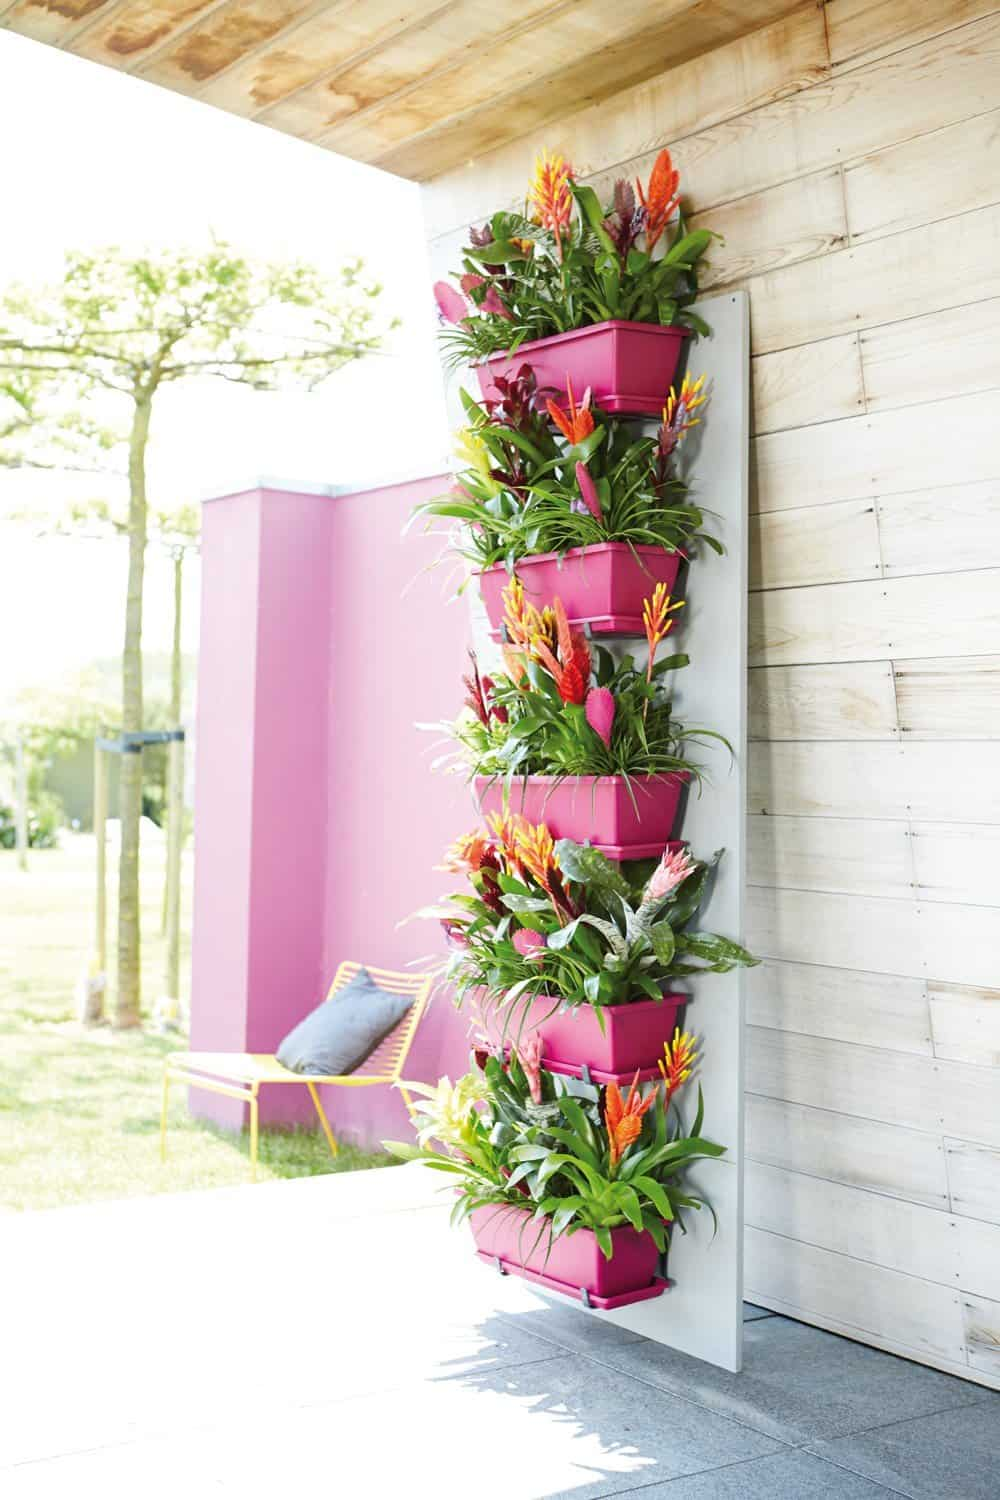 03-bright-pink-adds-a-pop-of-color-and-accents-vibrant-bromeliads-vertical-garden